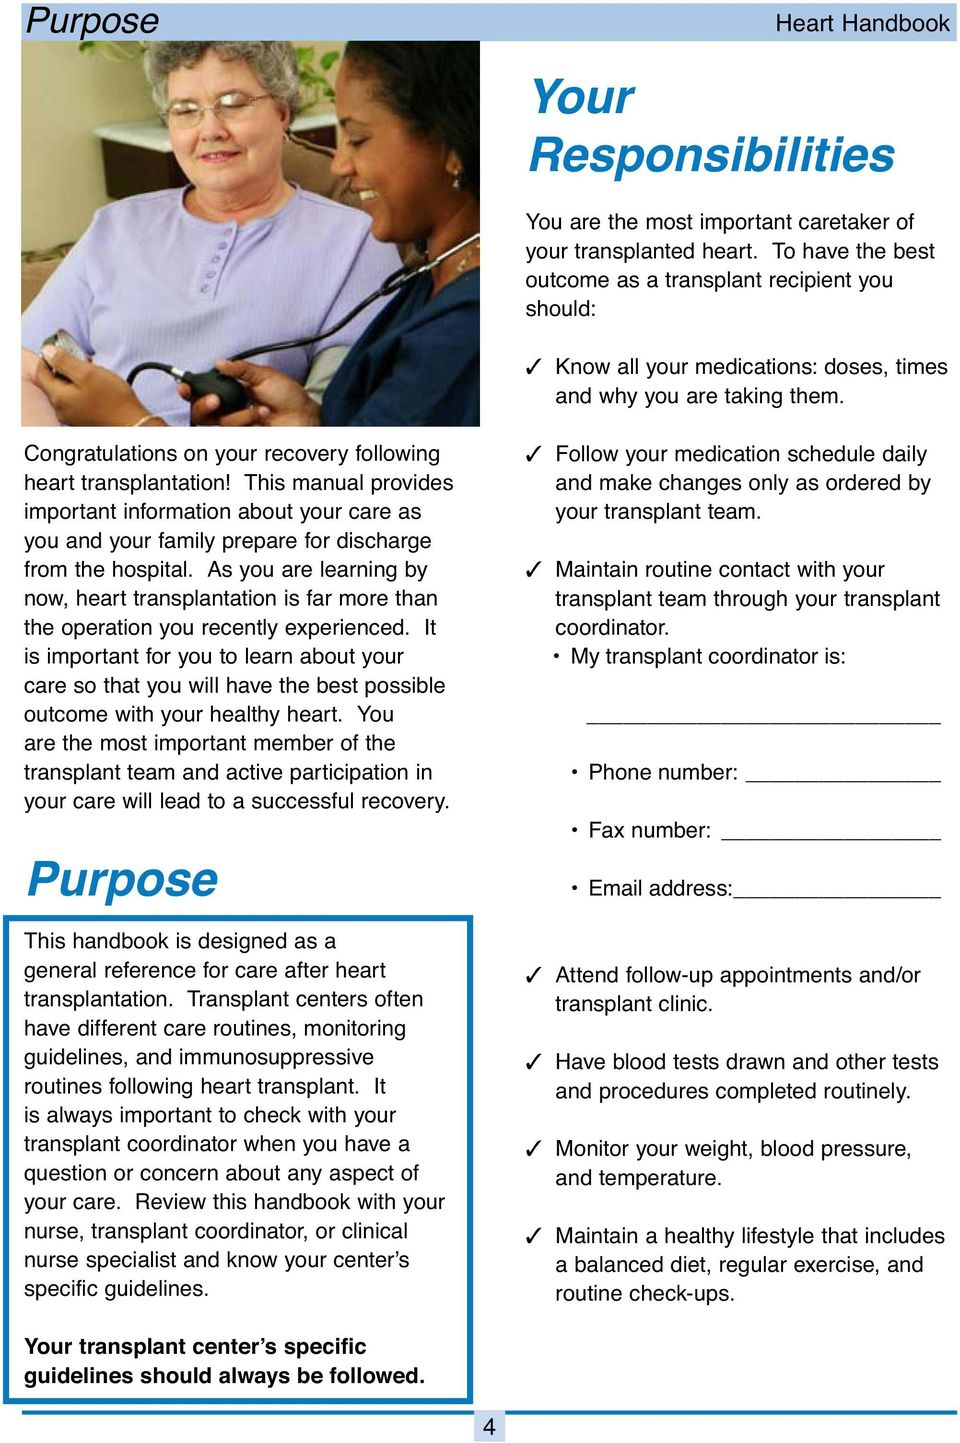 This manual provides important information about your care as you and your family prepare for discharge from the hospital.